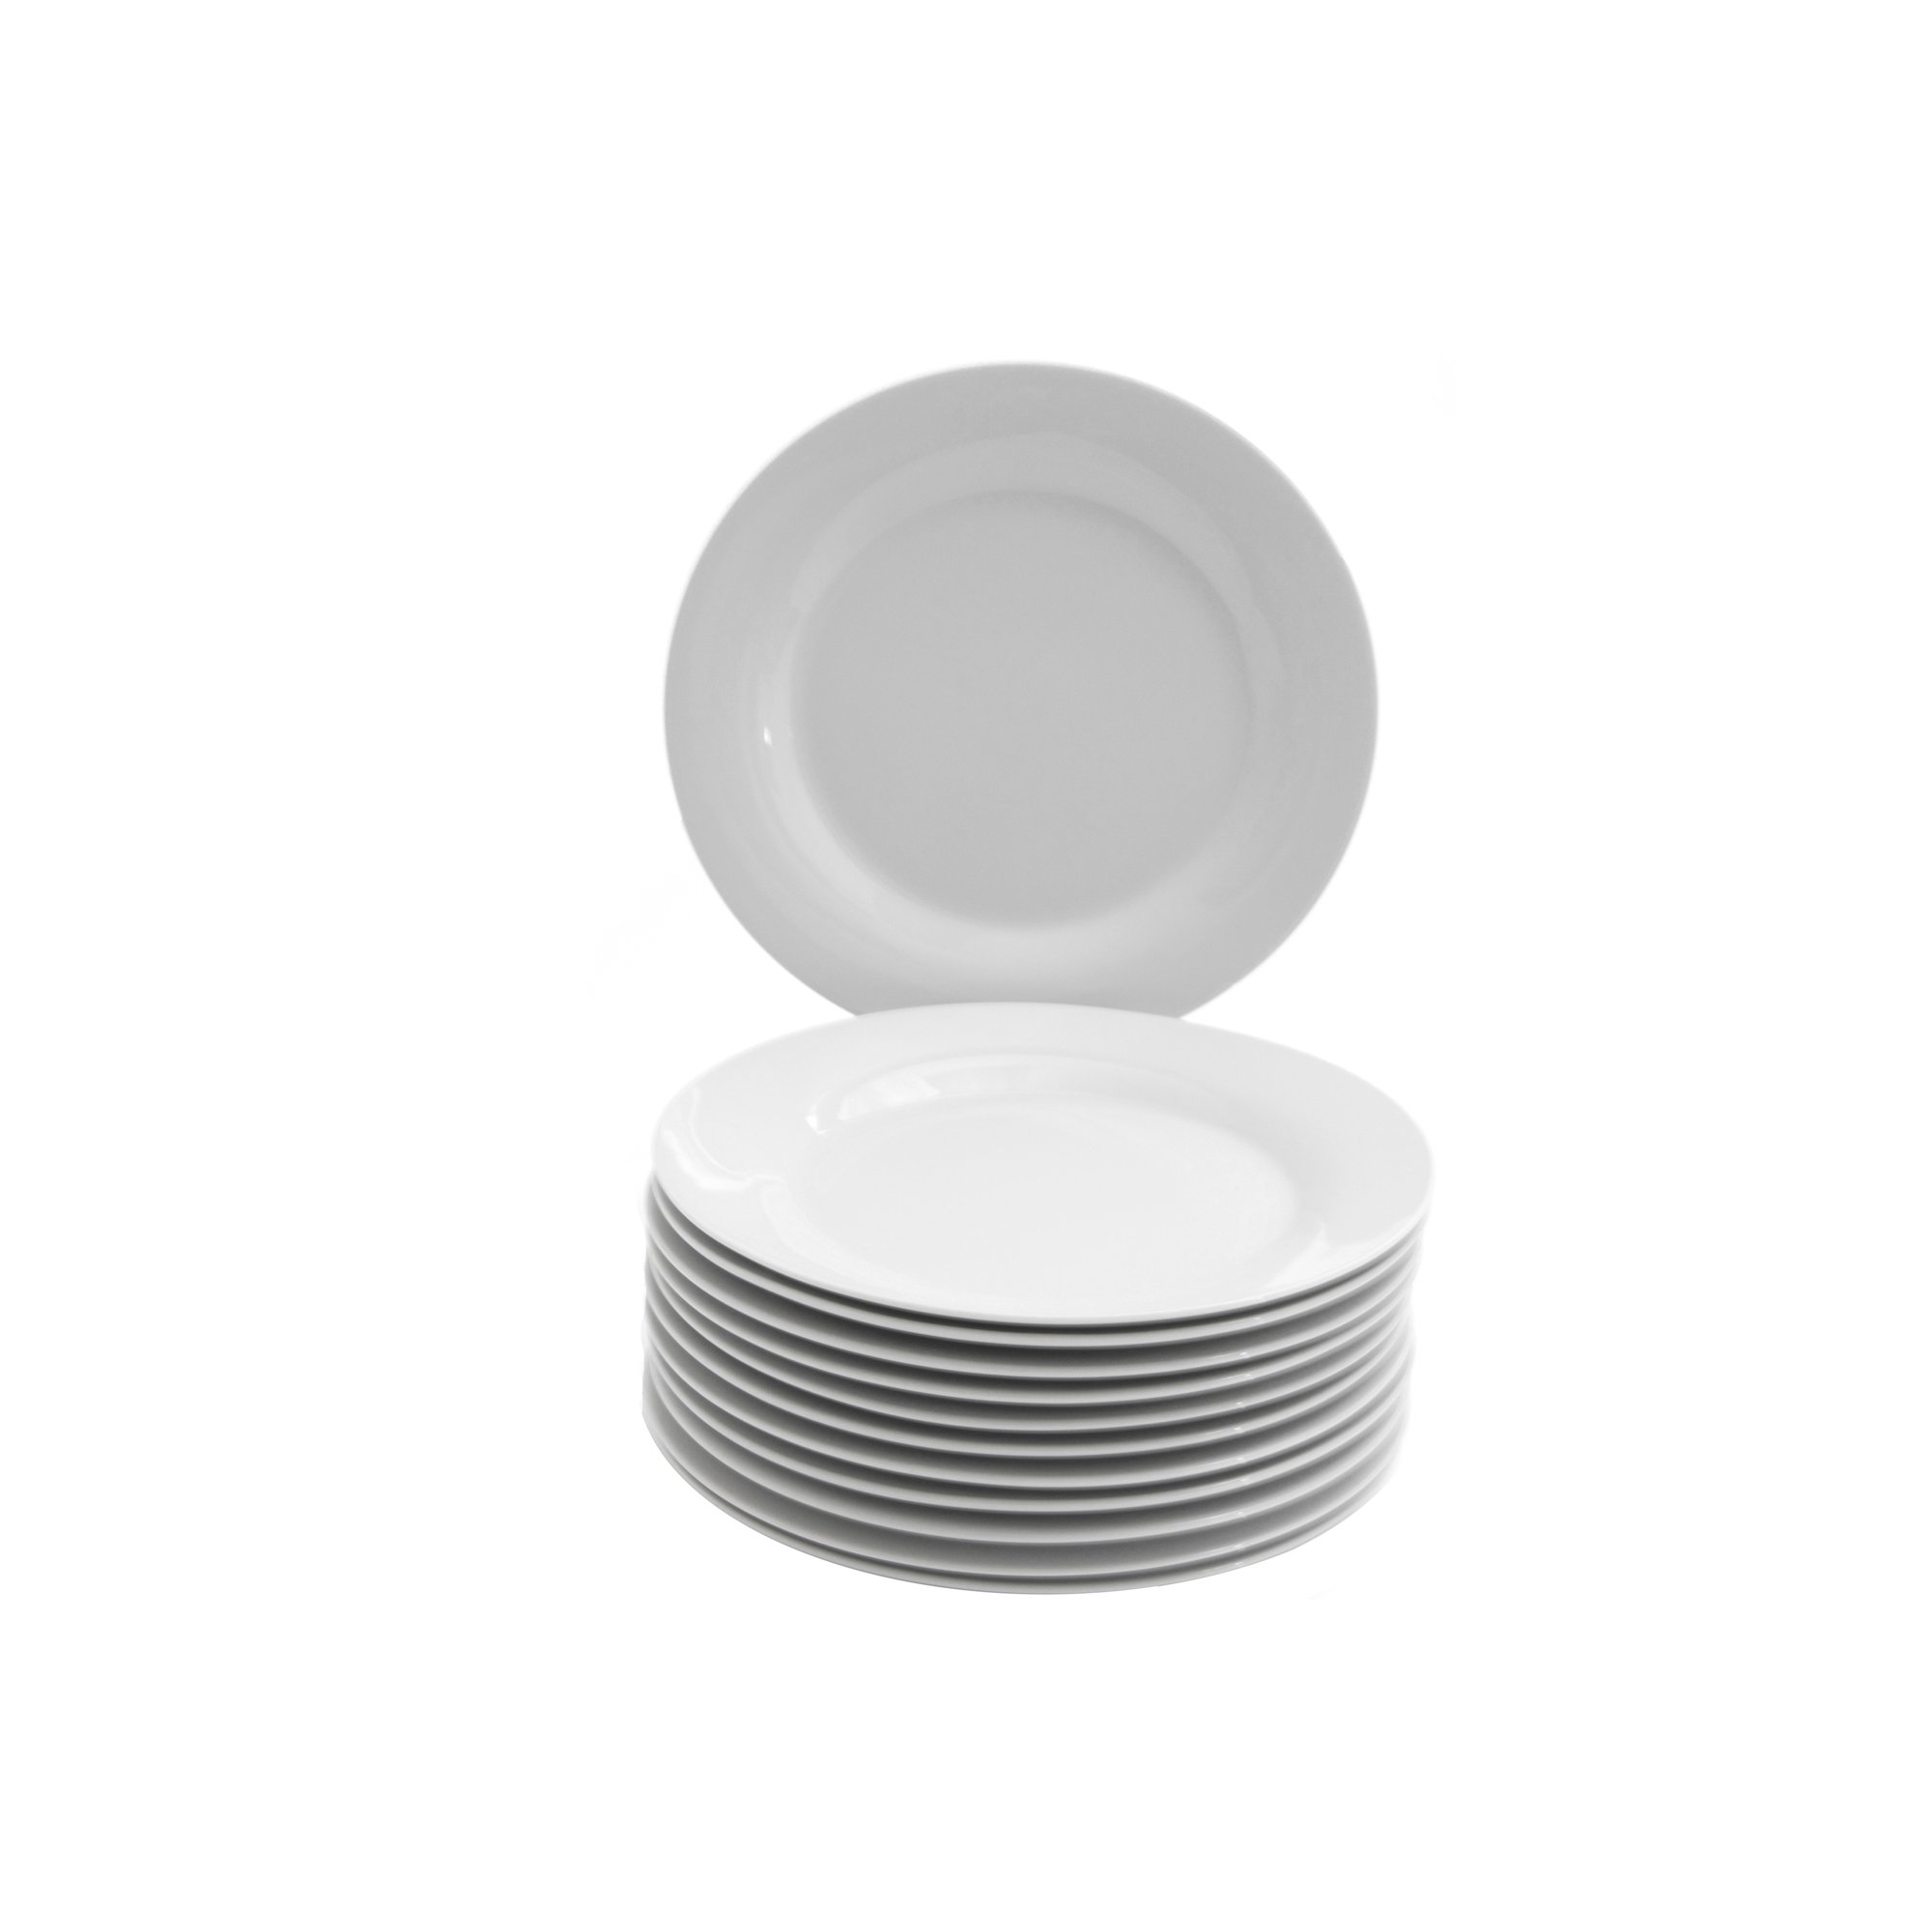 10 Strawberry Street Catering Set 7-1/2-Inch Salad/Dessert Plate, Set of 12